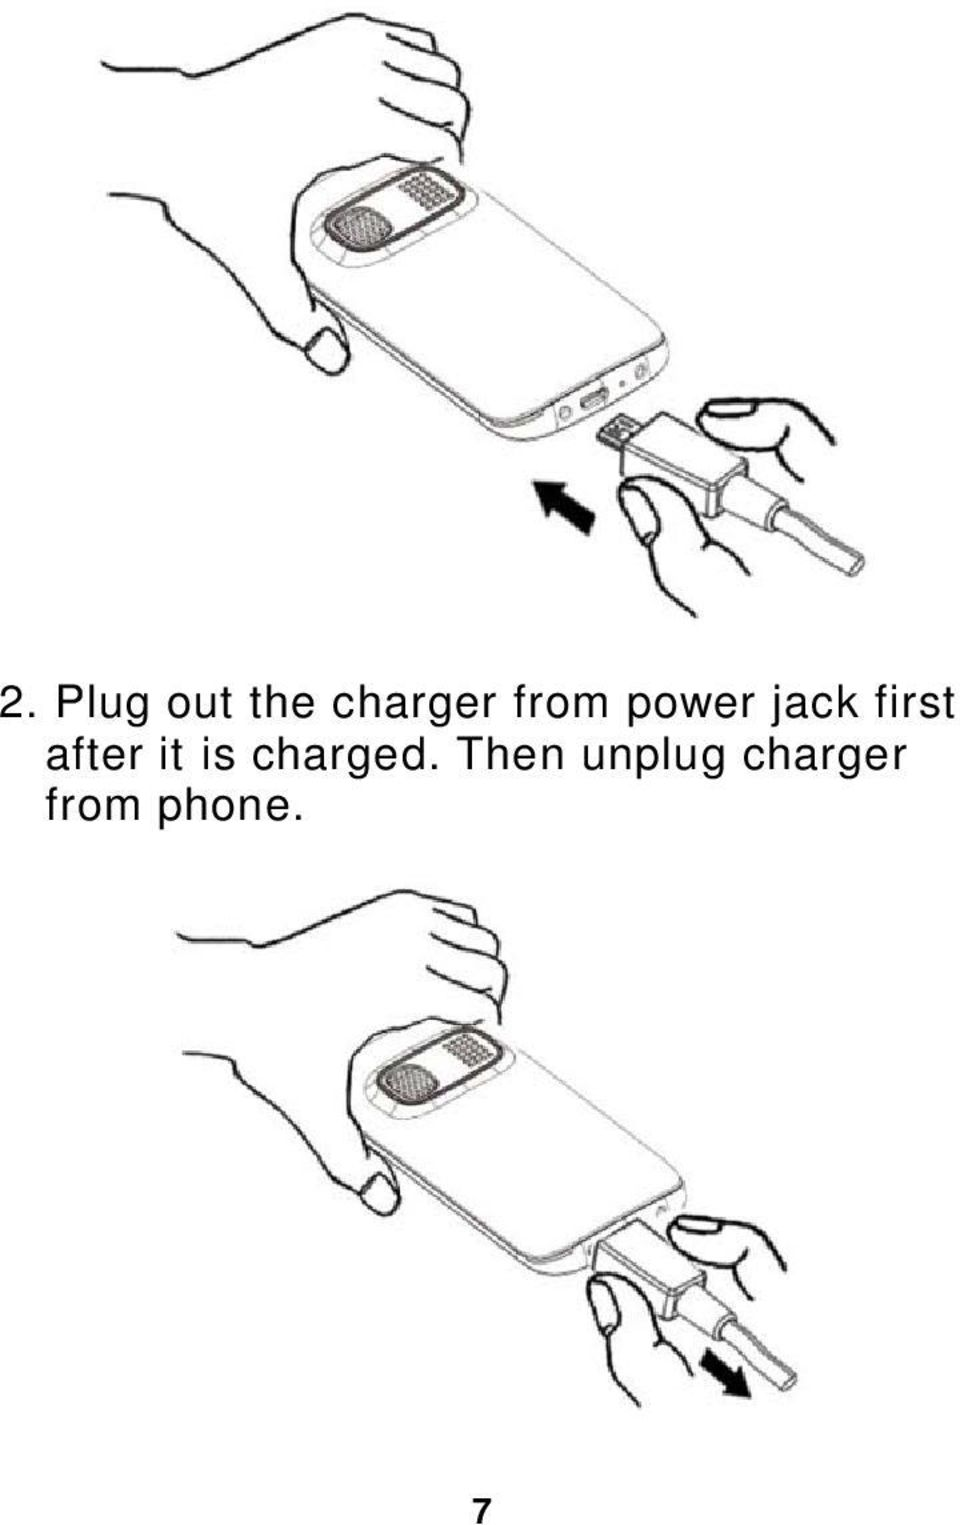 after it is charged.